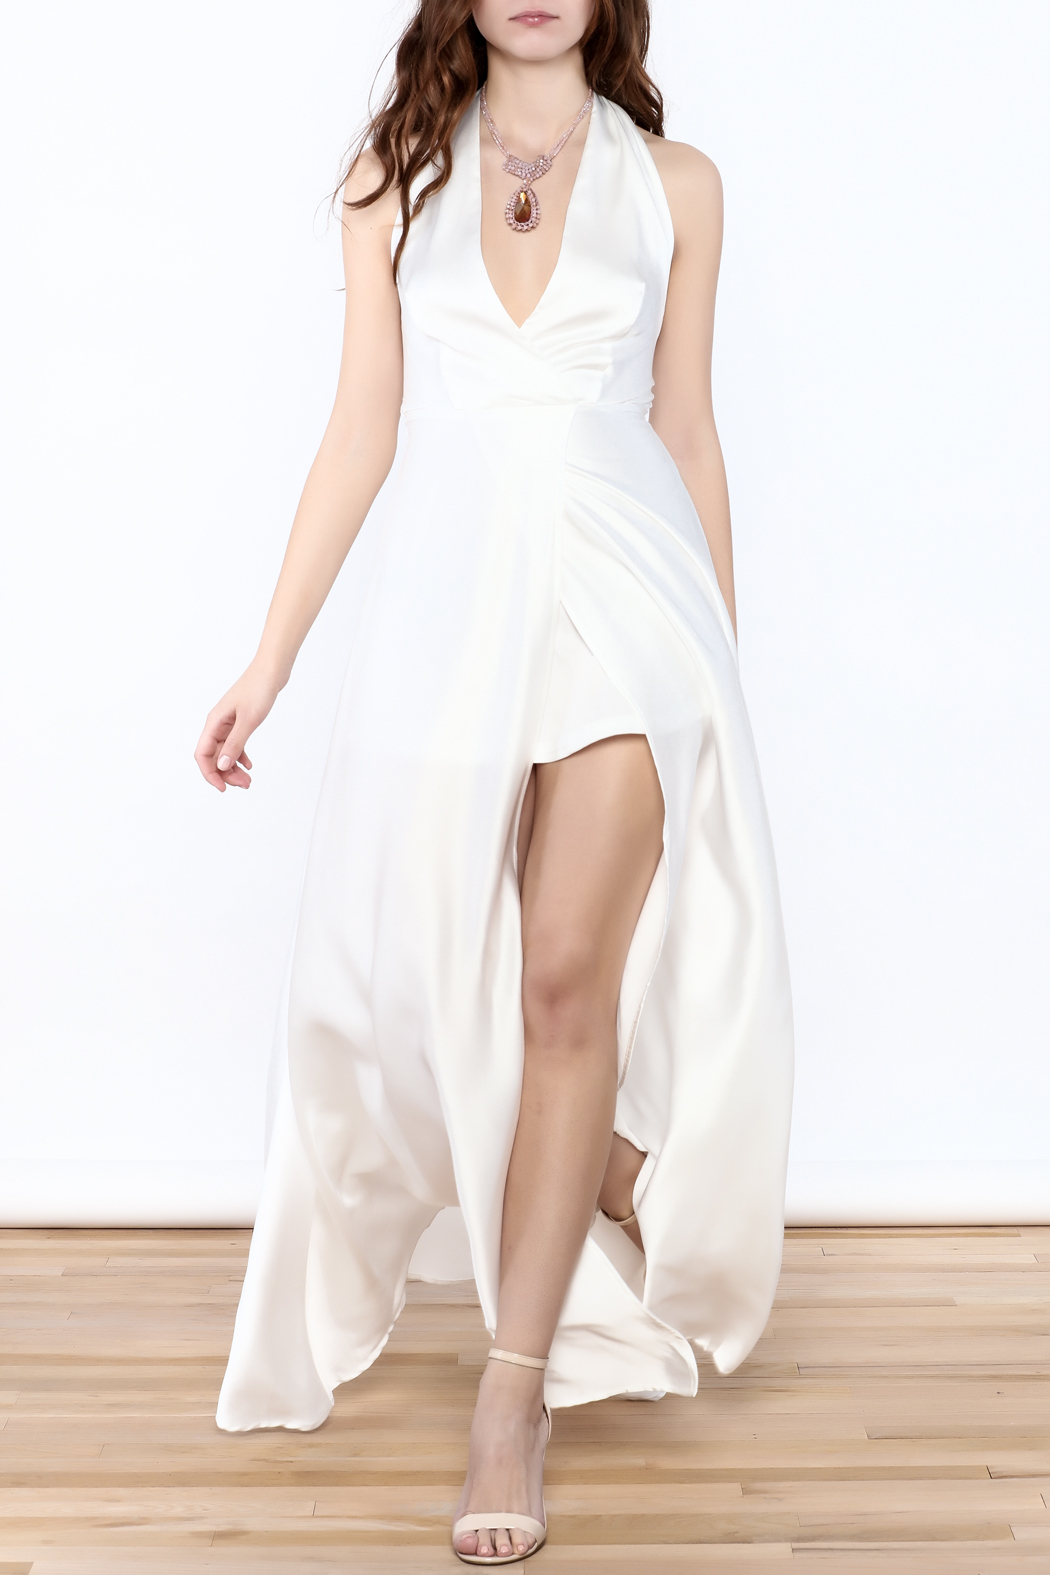 Xtaren White Halter Dress - Main Image